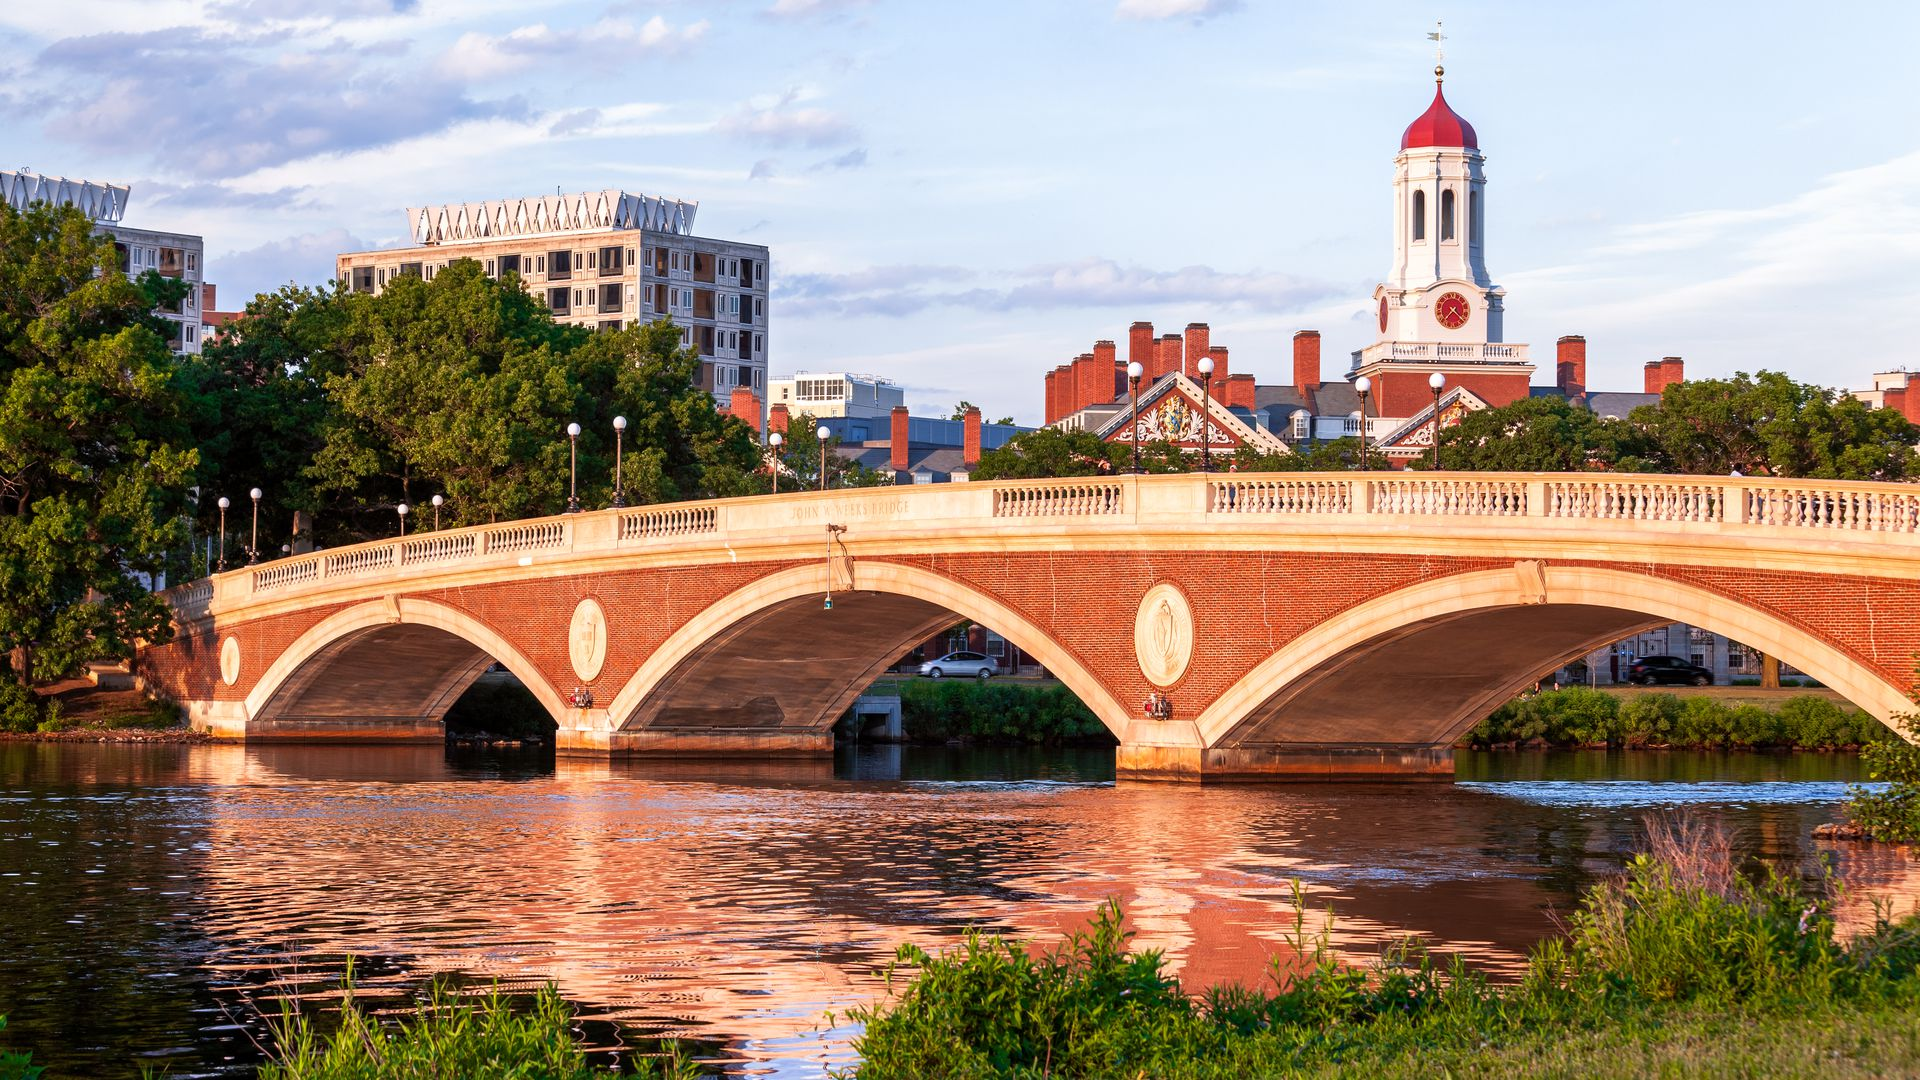 This is an image of a bridge at Harvard on a sunny, clear day.